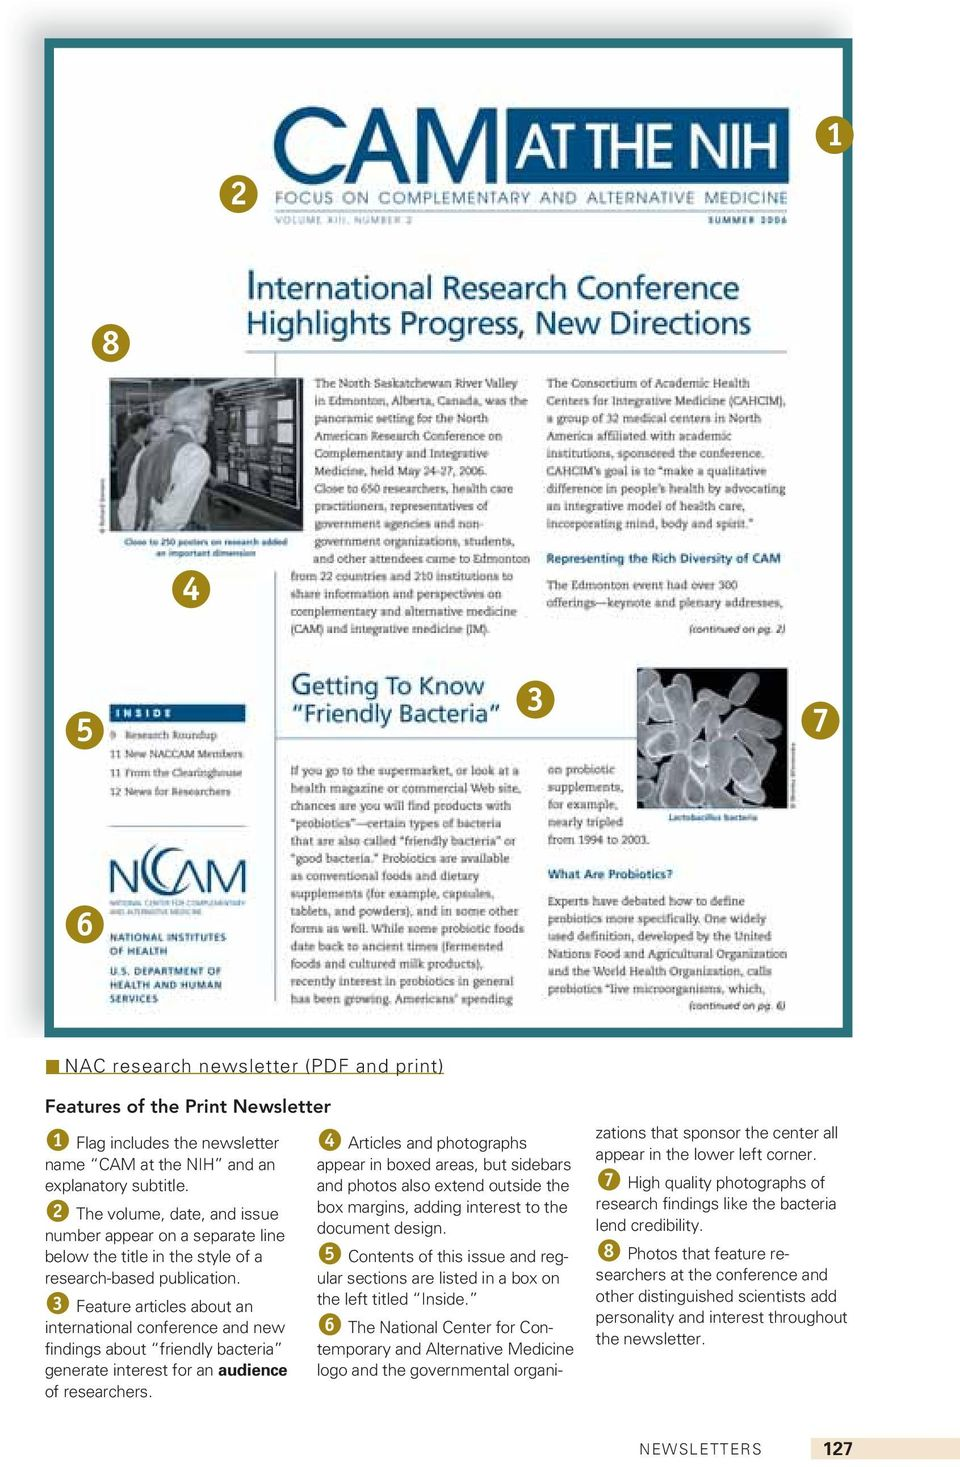 3 Feature articles about an international conference and new findings about friendly bacteria generate interest for an audience of researchers.